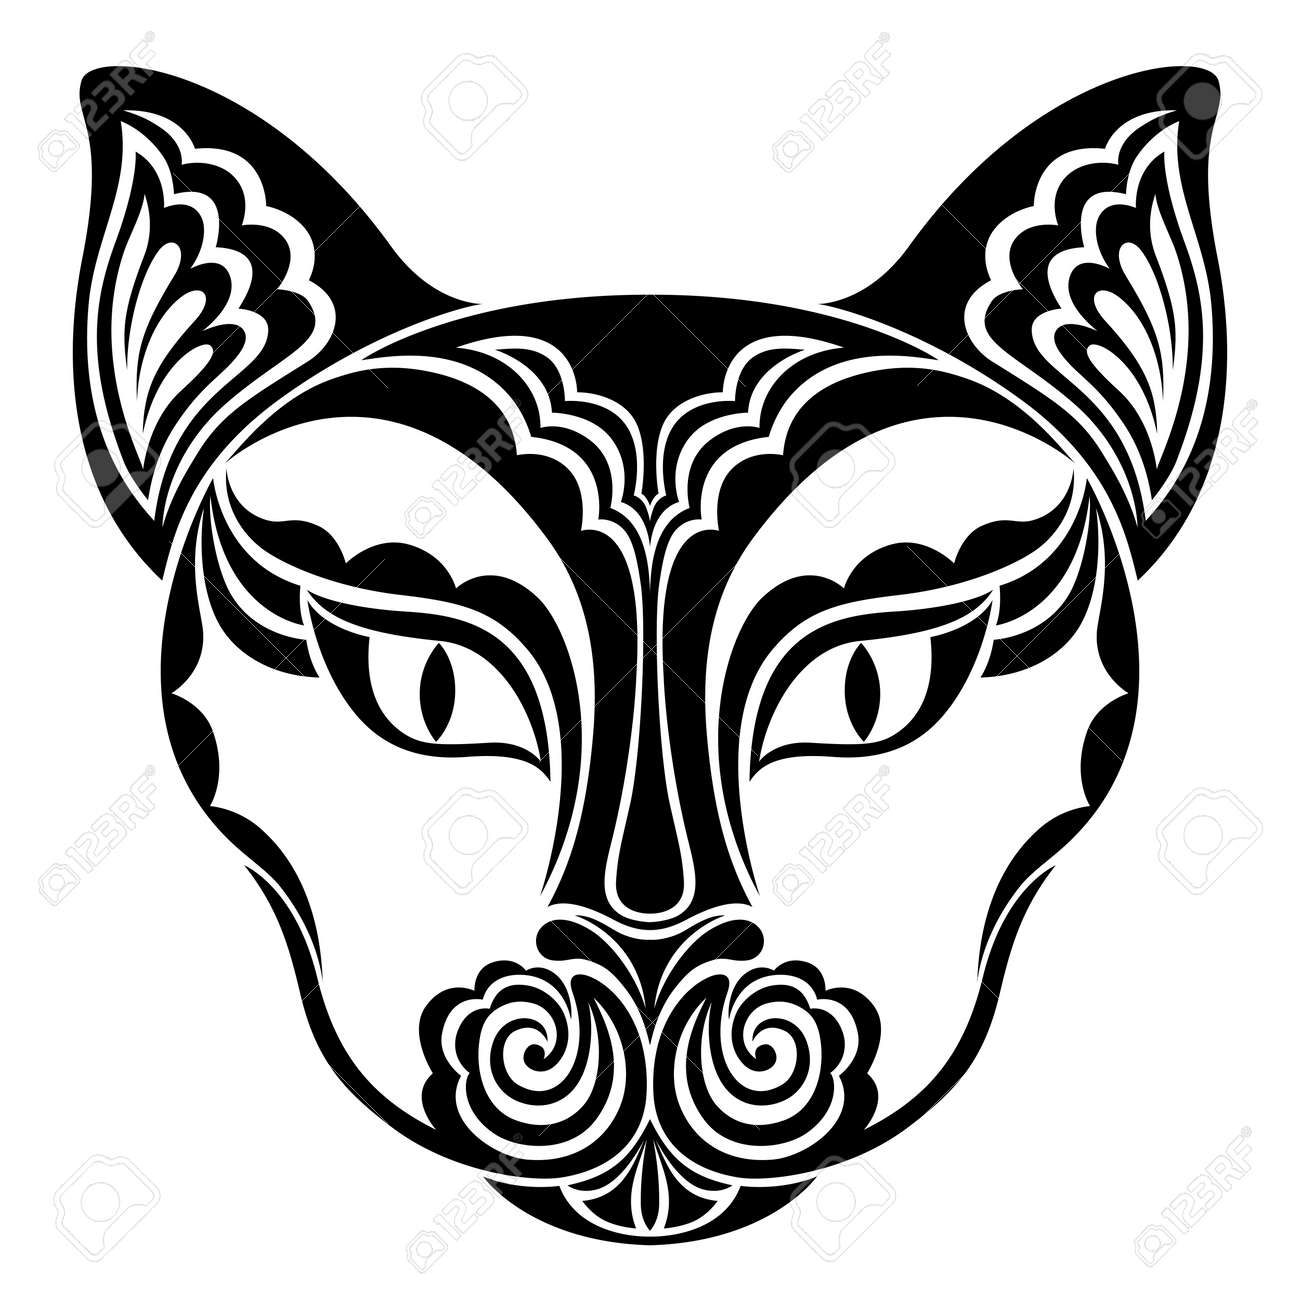 Cat. Vector decorative animal head. Suitable for Halloween celebration. Black and white hand drawn tattoo. Stylized graphics for t-shirts, postcards, textiles. Isolated on white background. - 152834721